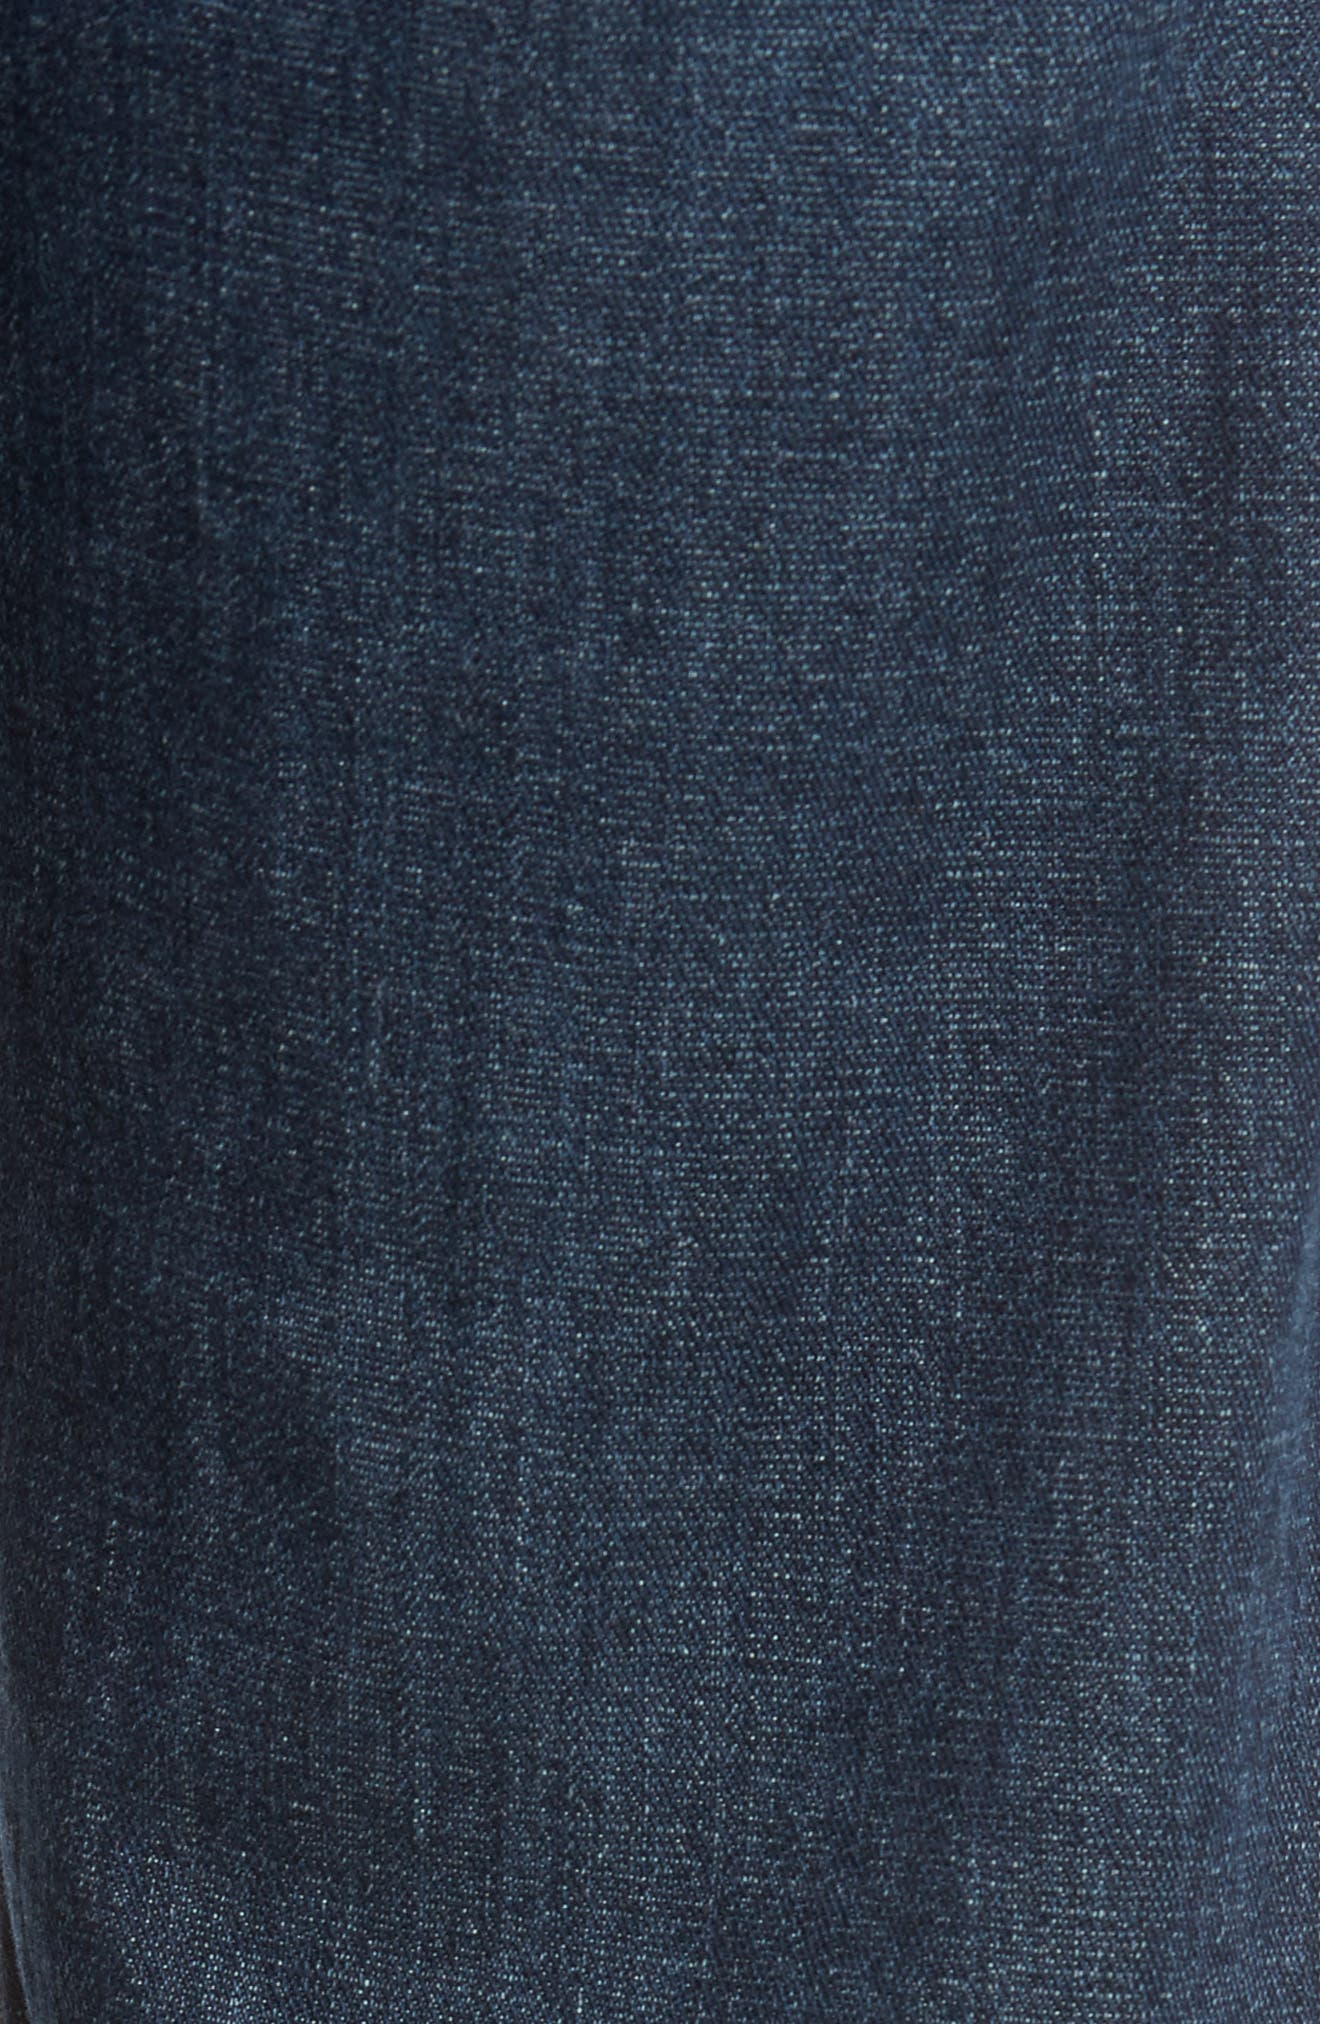 Austyn Relaxed Fit Jeans,                             Alternate thumbnail 5, color,                             400